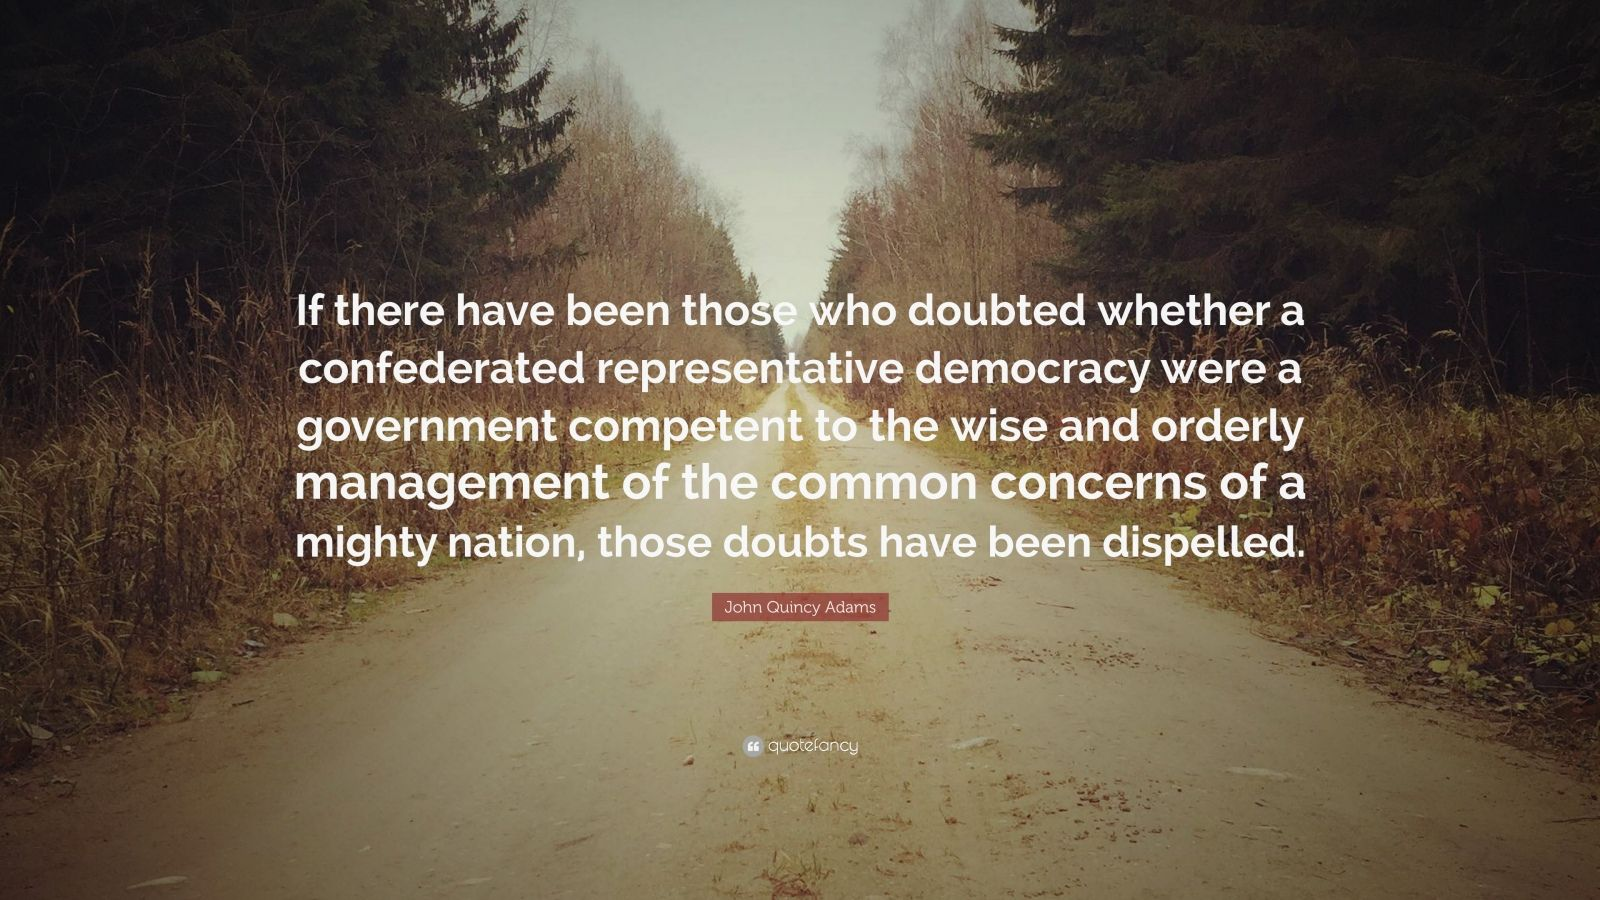 "John Quincy Adams Quote: ""If there have been those who doubted whether a confederated representative democracy were a government competent to the wise and orderly management of the common concerns of a mighty nation, those doubts have been dispelled."""